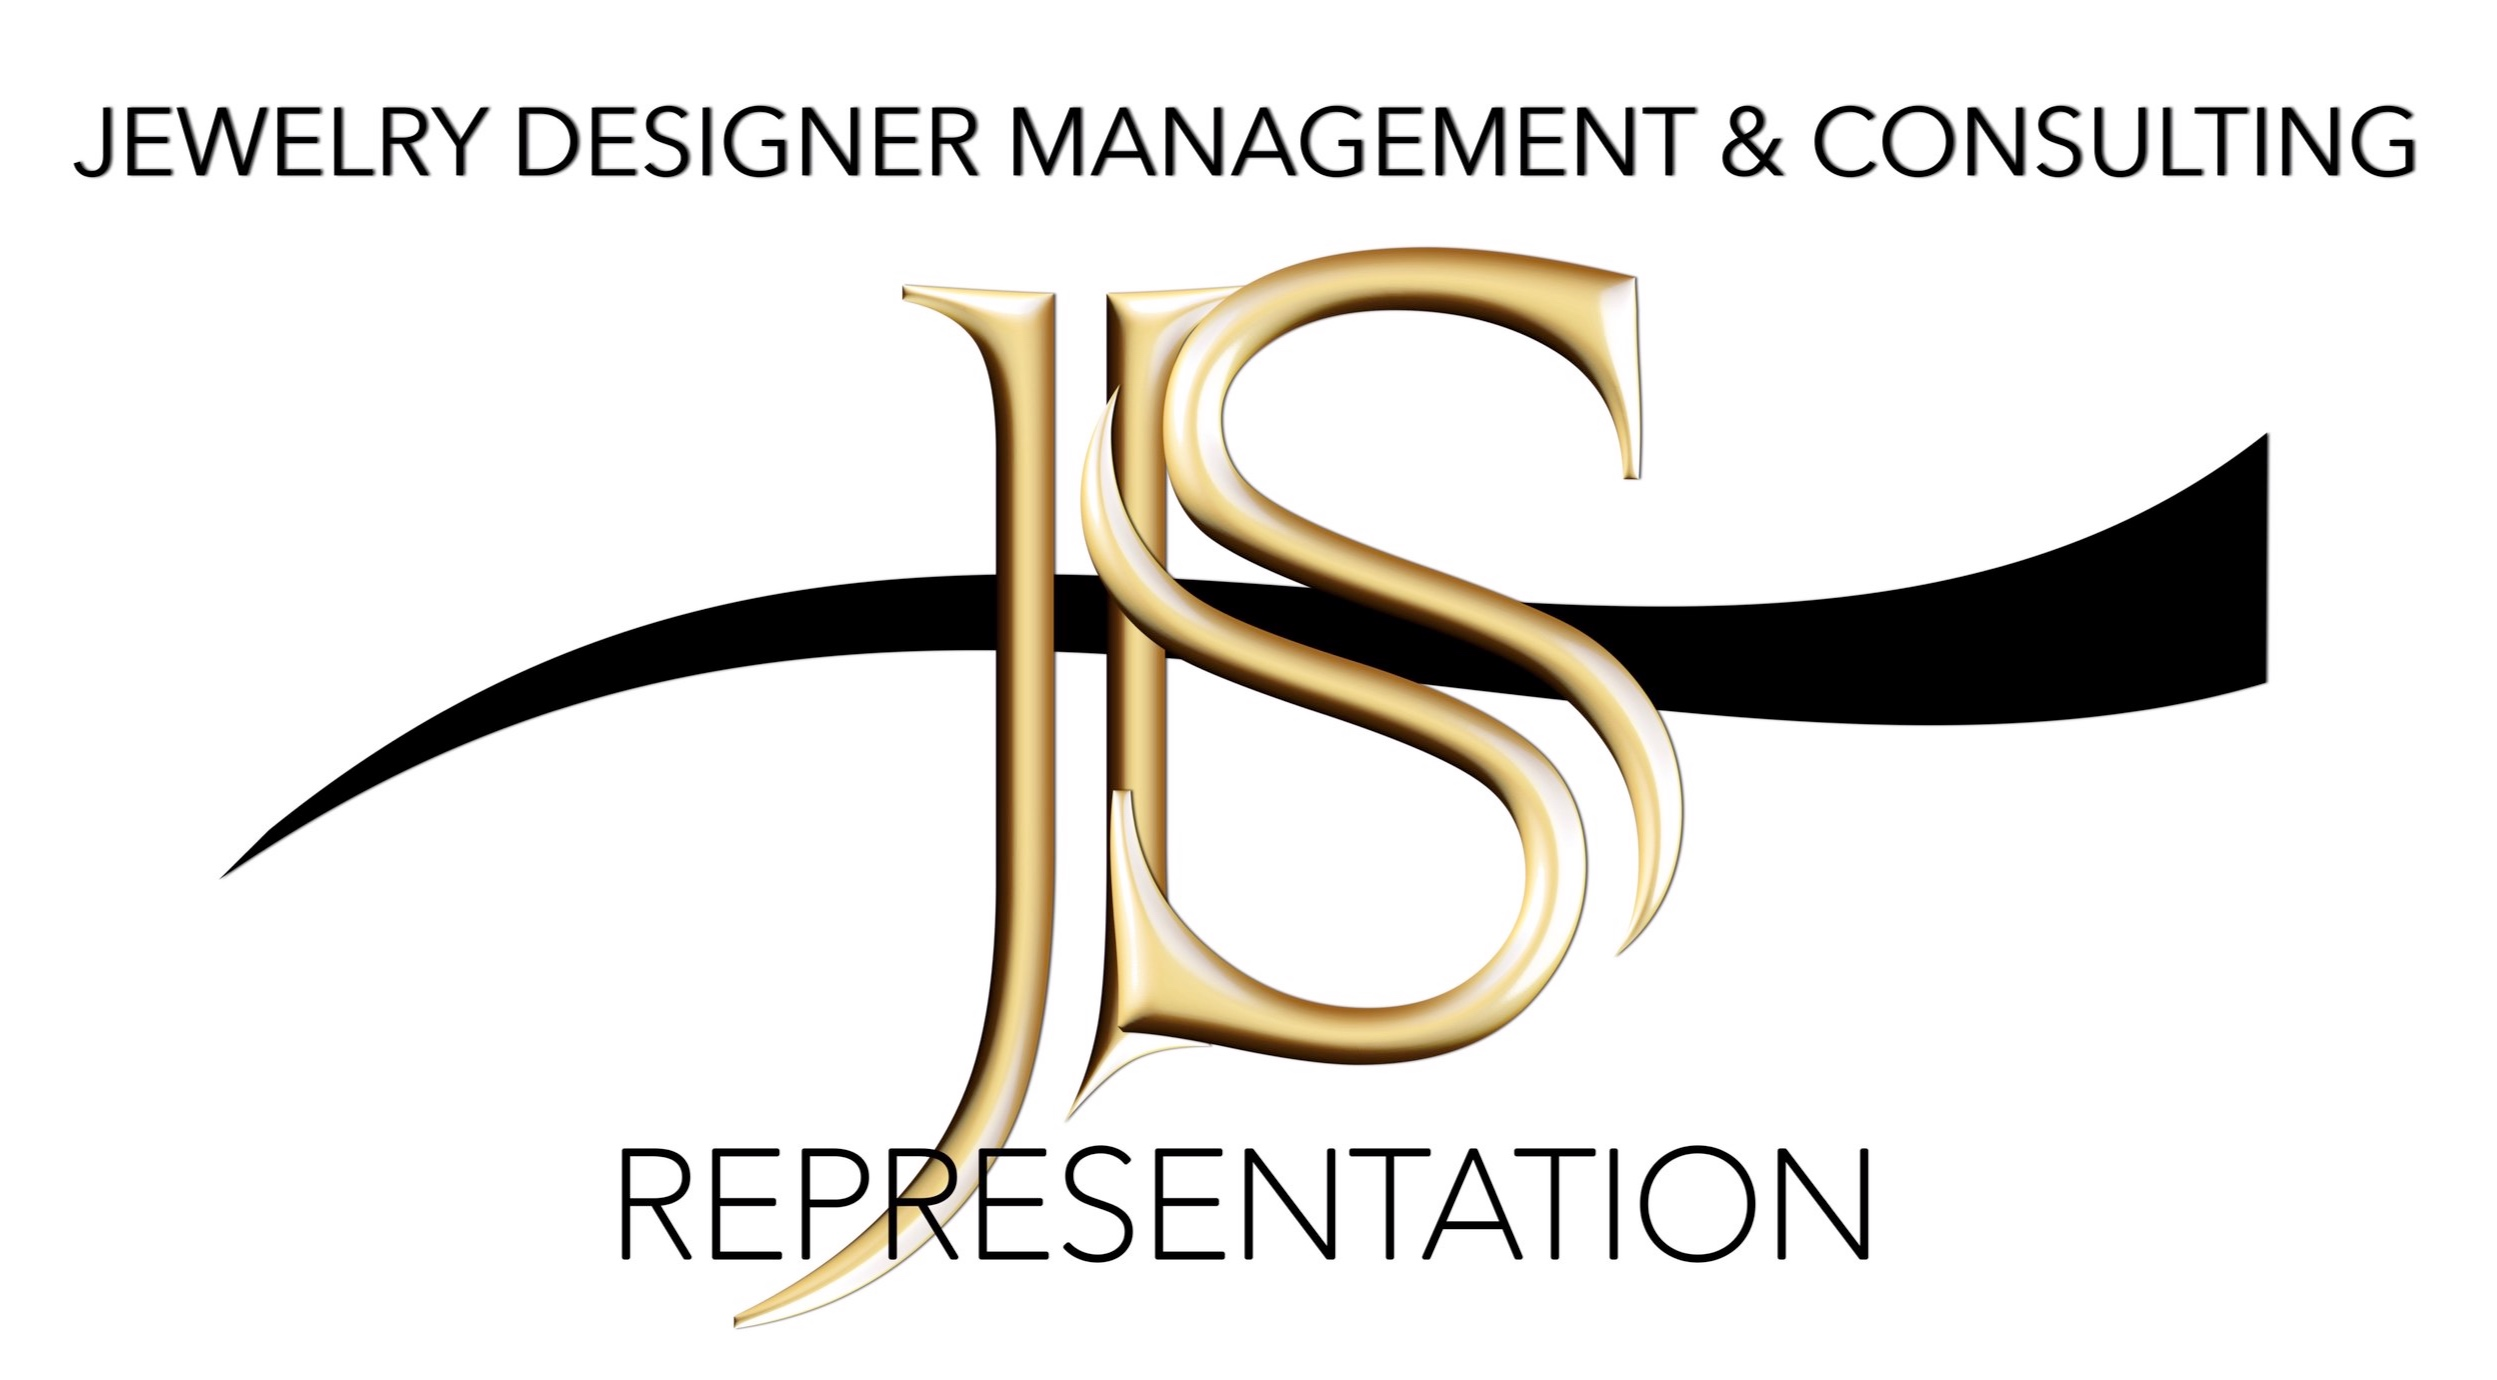 JEWELRY DESIGNER CONSULTATION AND MANAGEMENT THE JEWELRY SHOWCASE